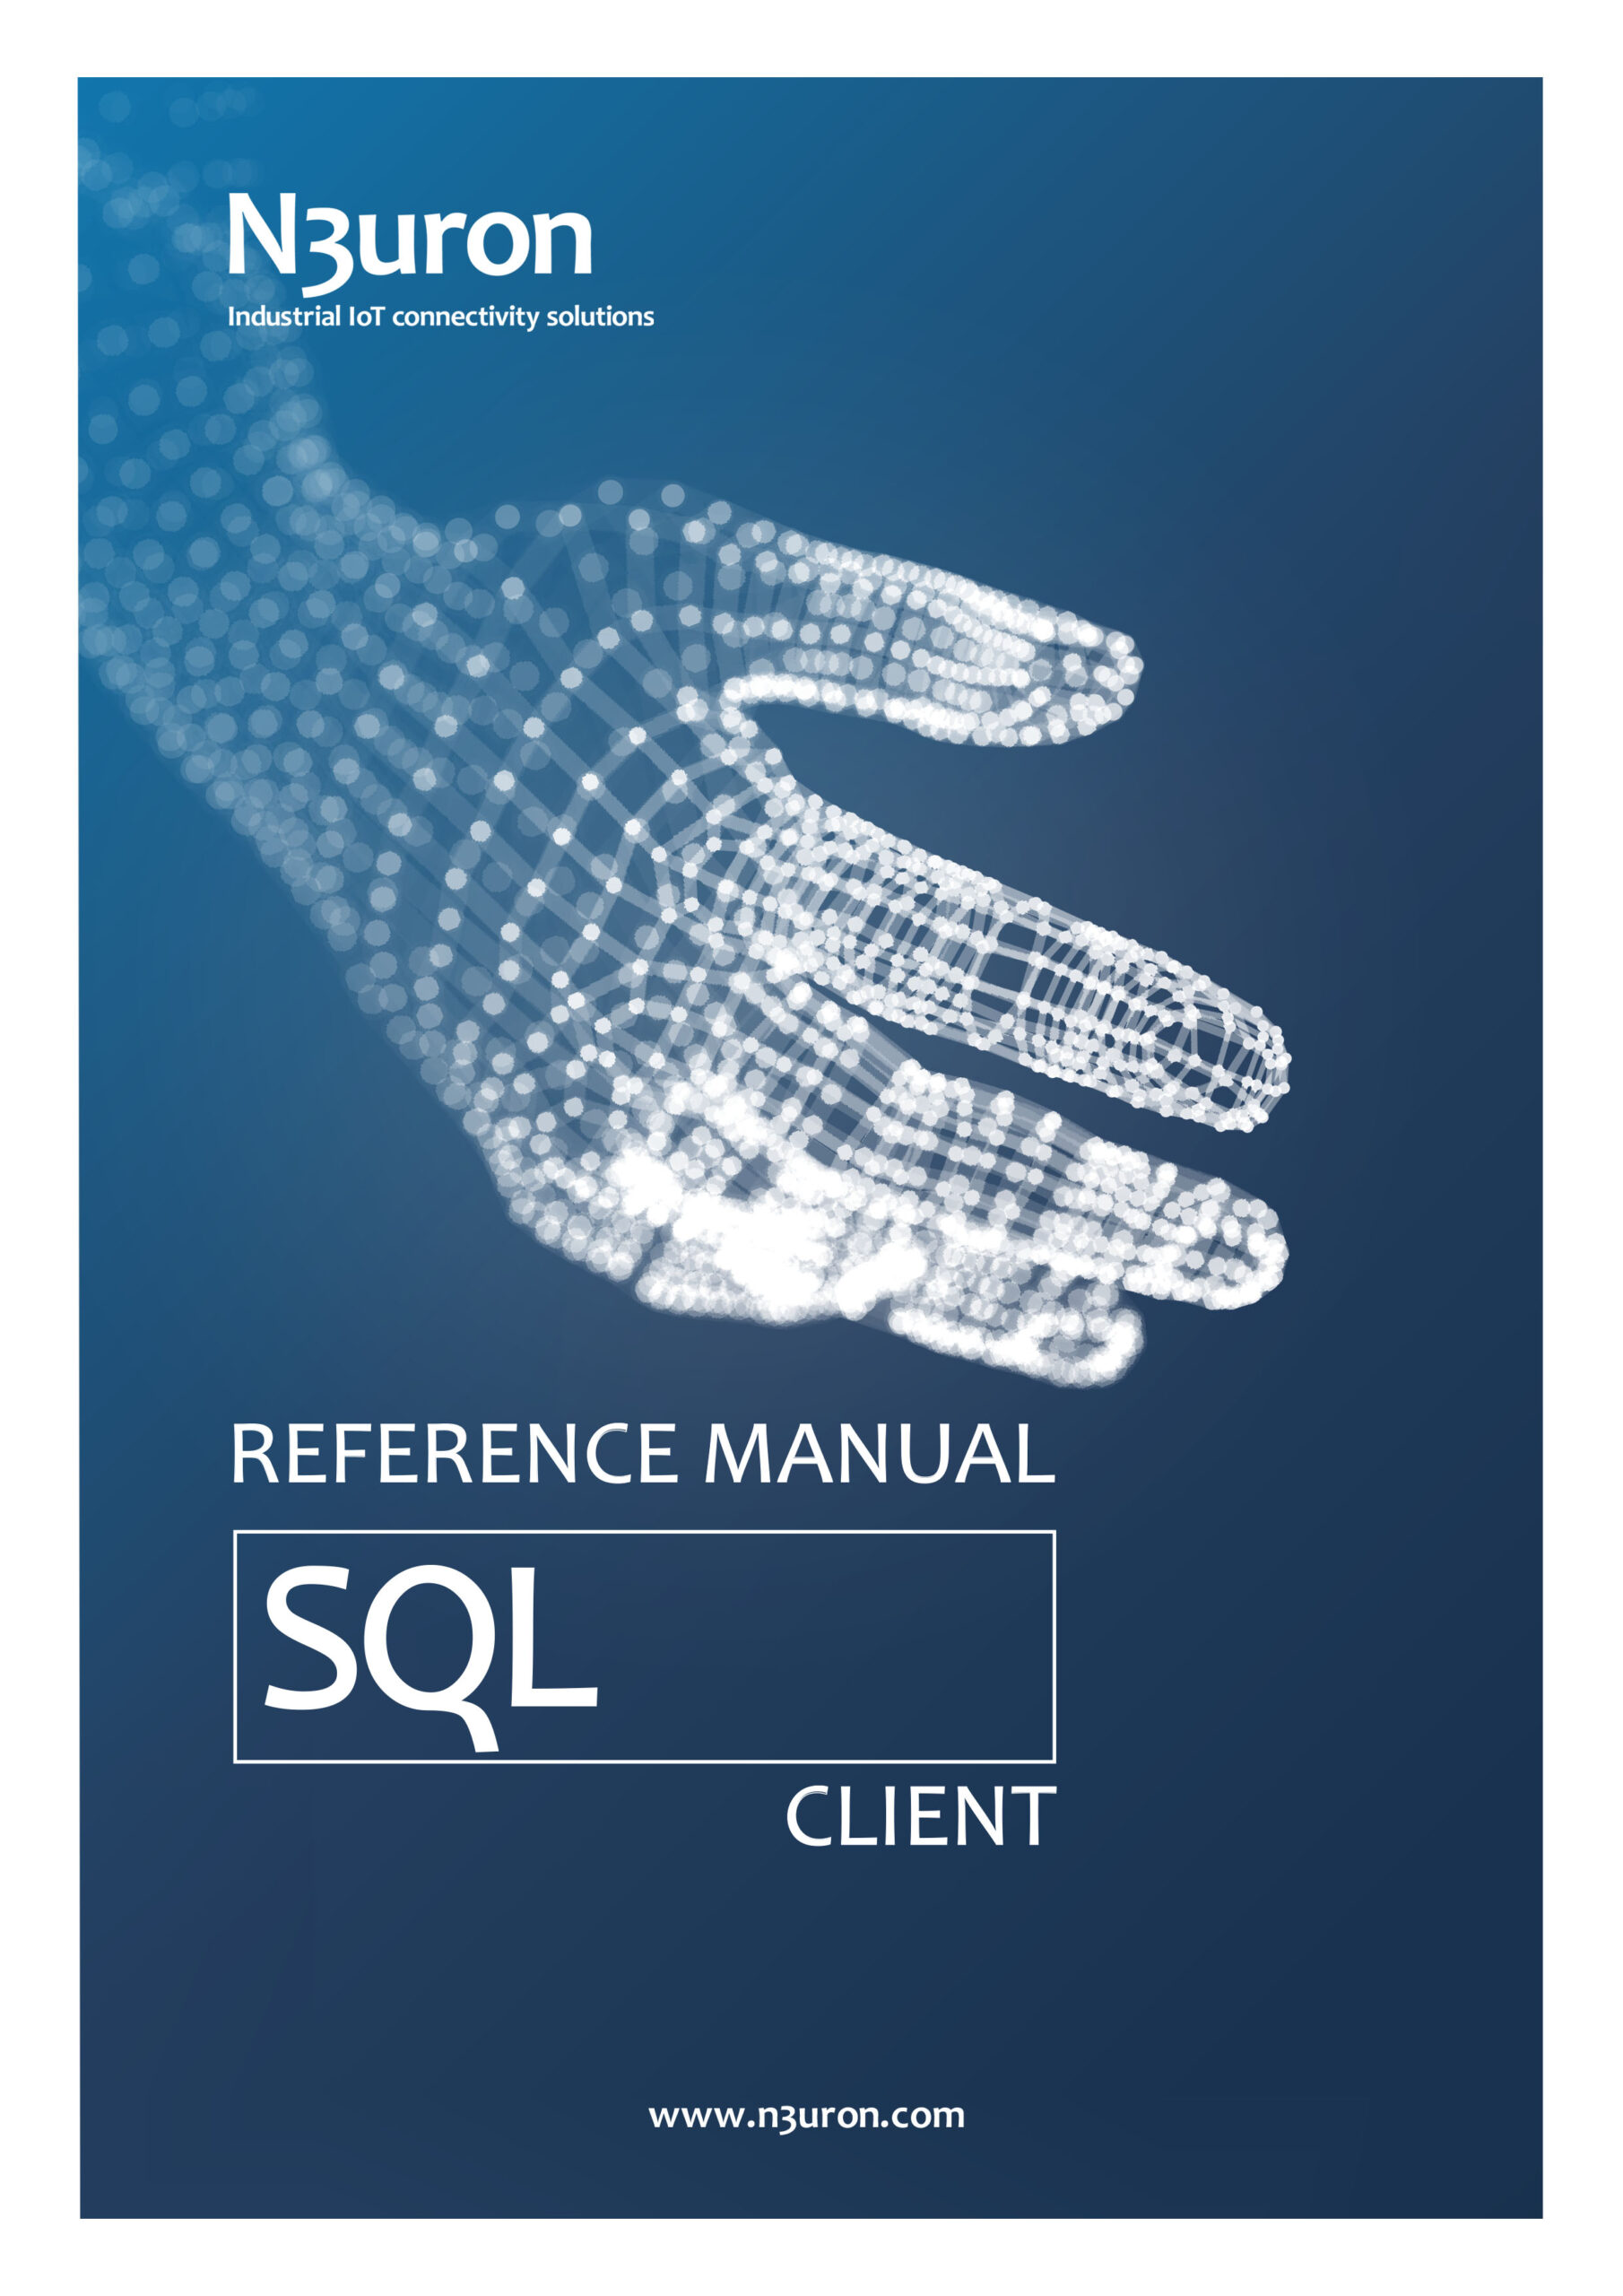 N3uron Industrial IoT communication platform SQL Client Manual Cover